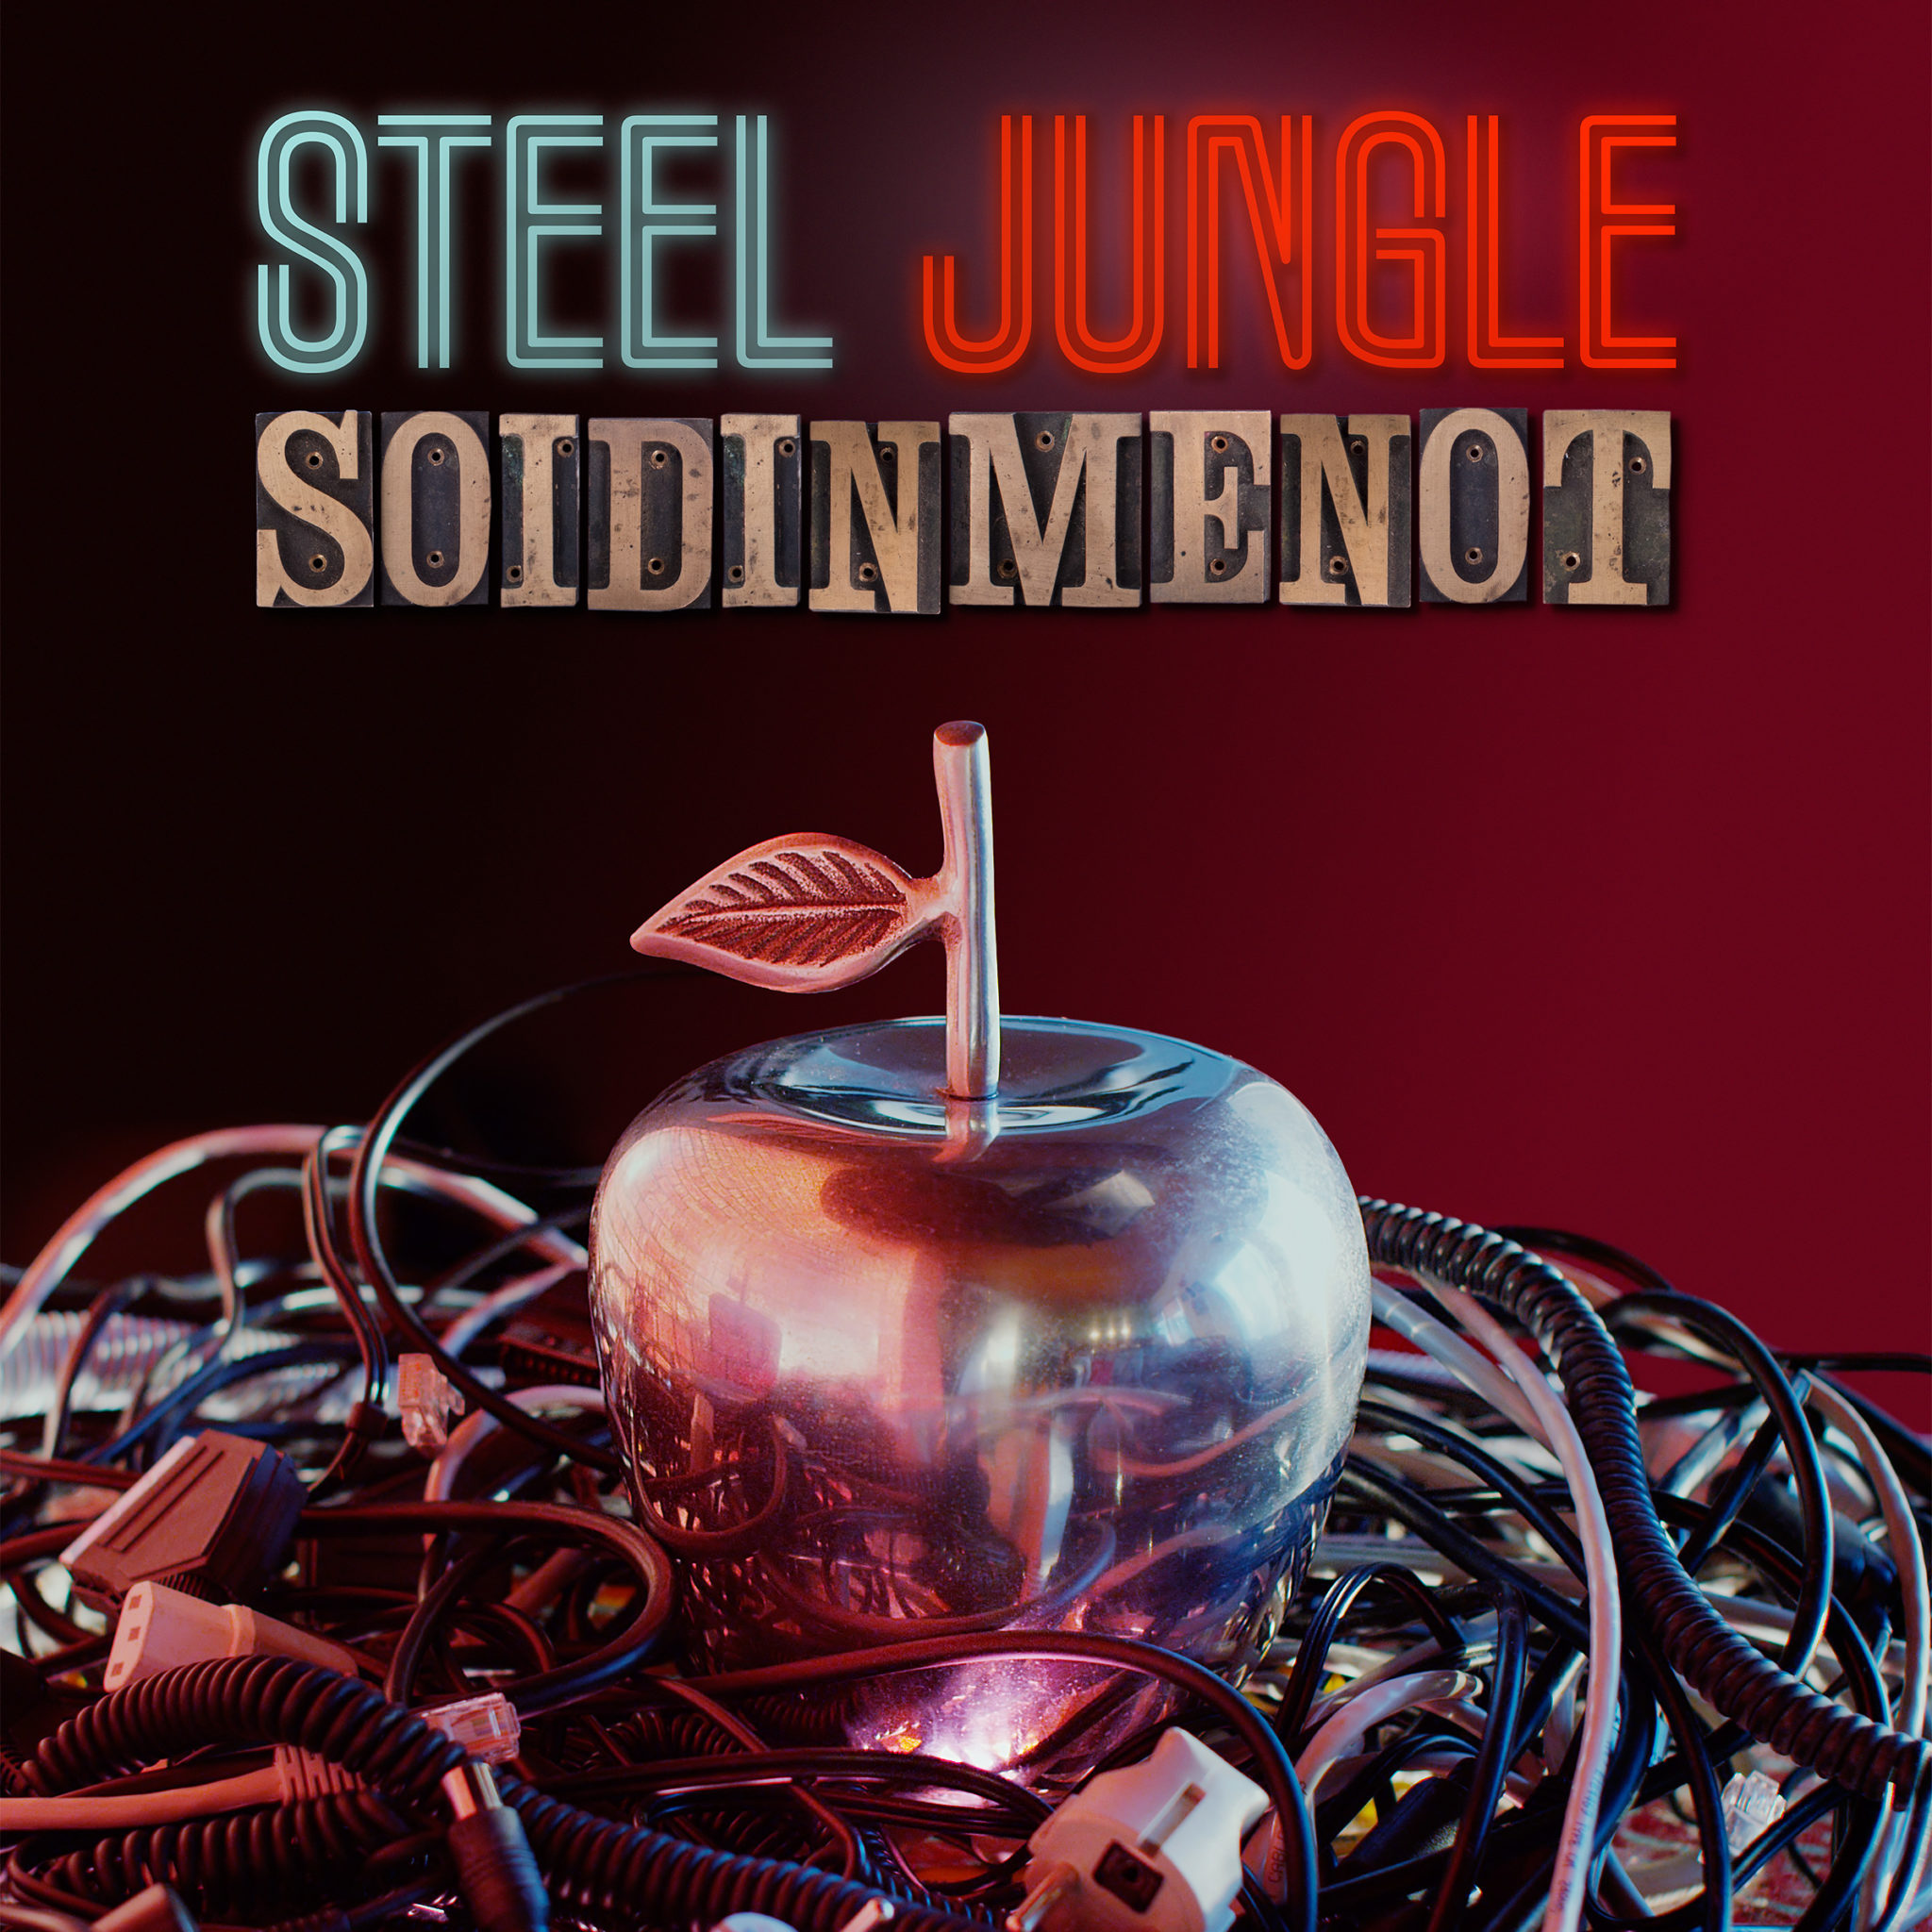 Steel Jungle